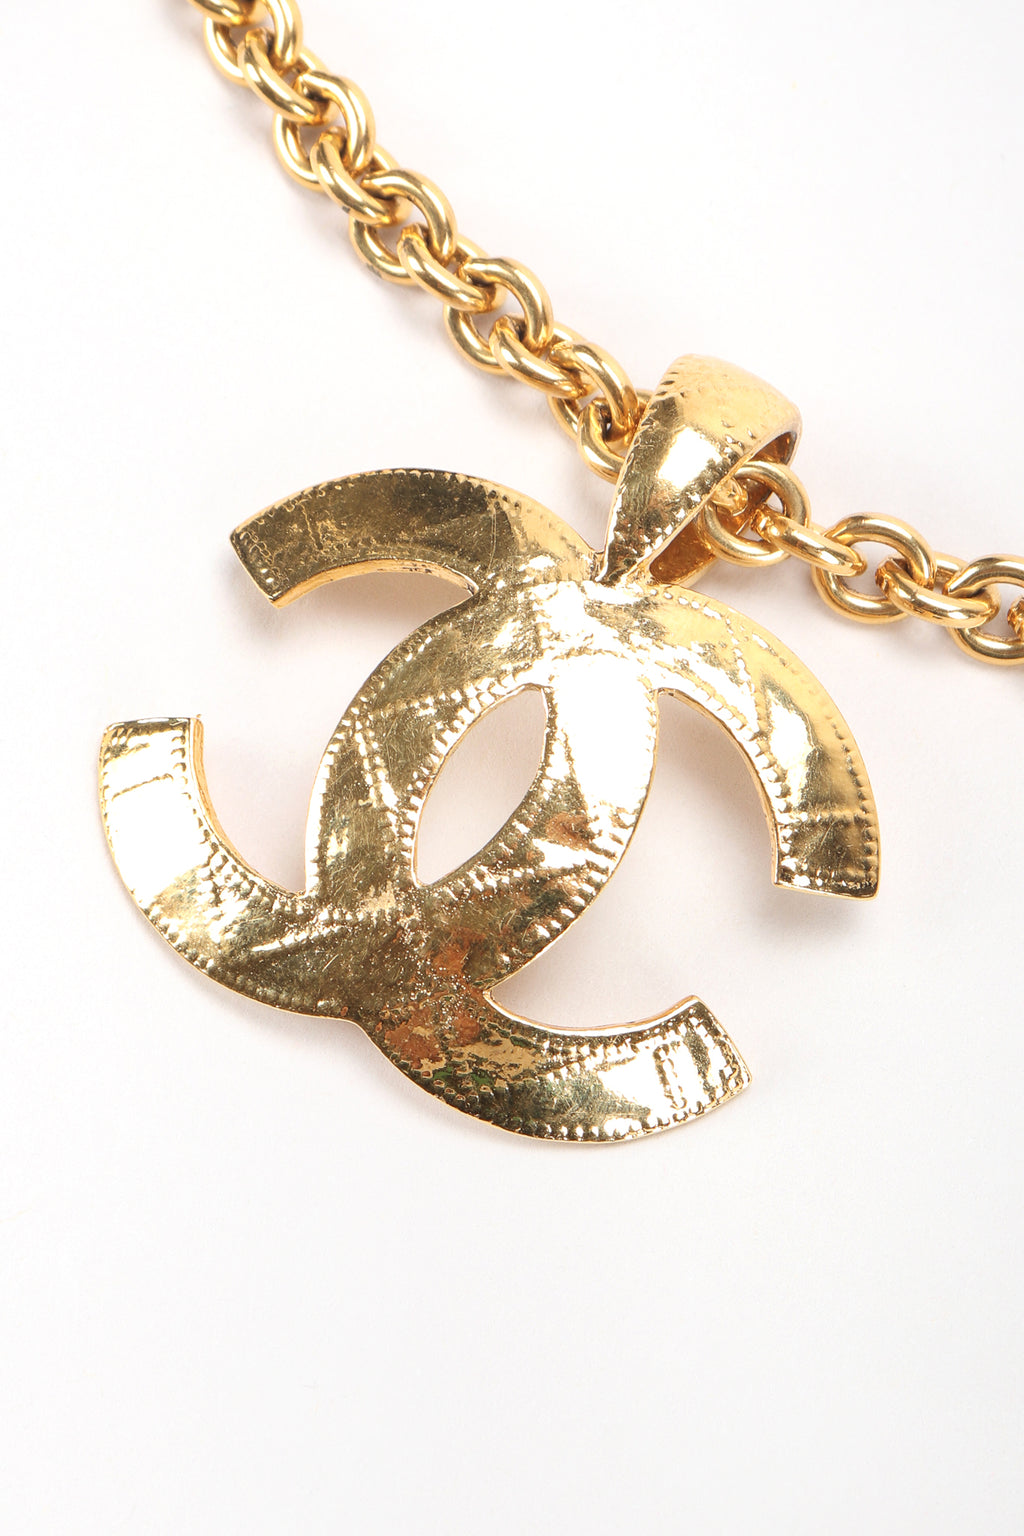 Recess Designer Consignment Vintage Jewelry Chanel Quilted Interlocking CC Logo Pendant Necklace Los Angeles Resale